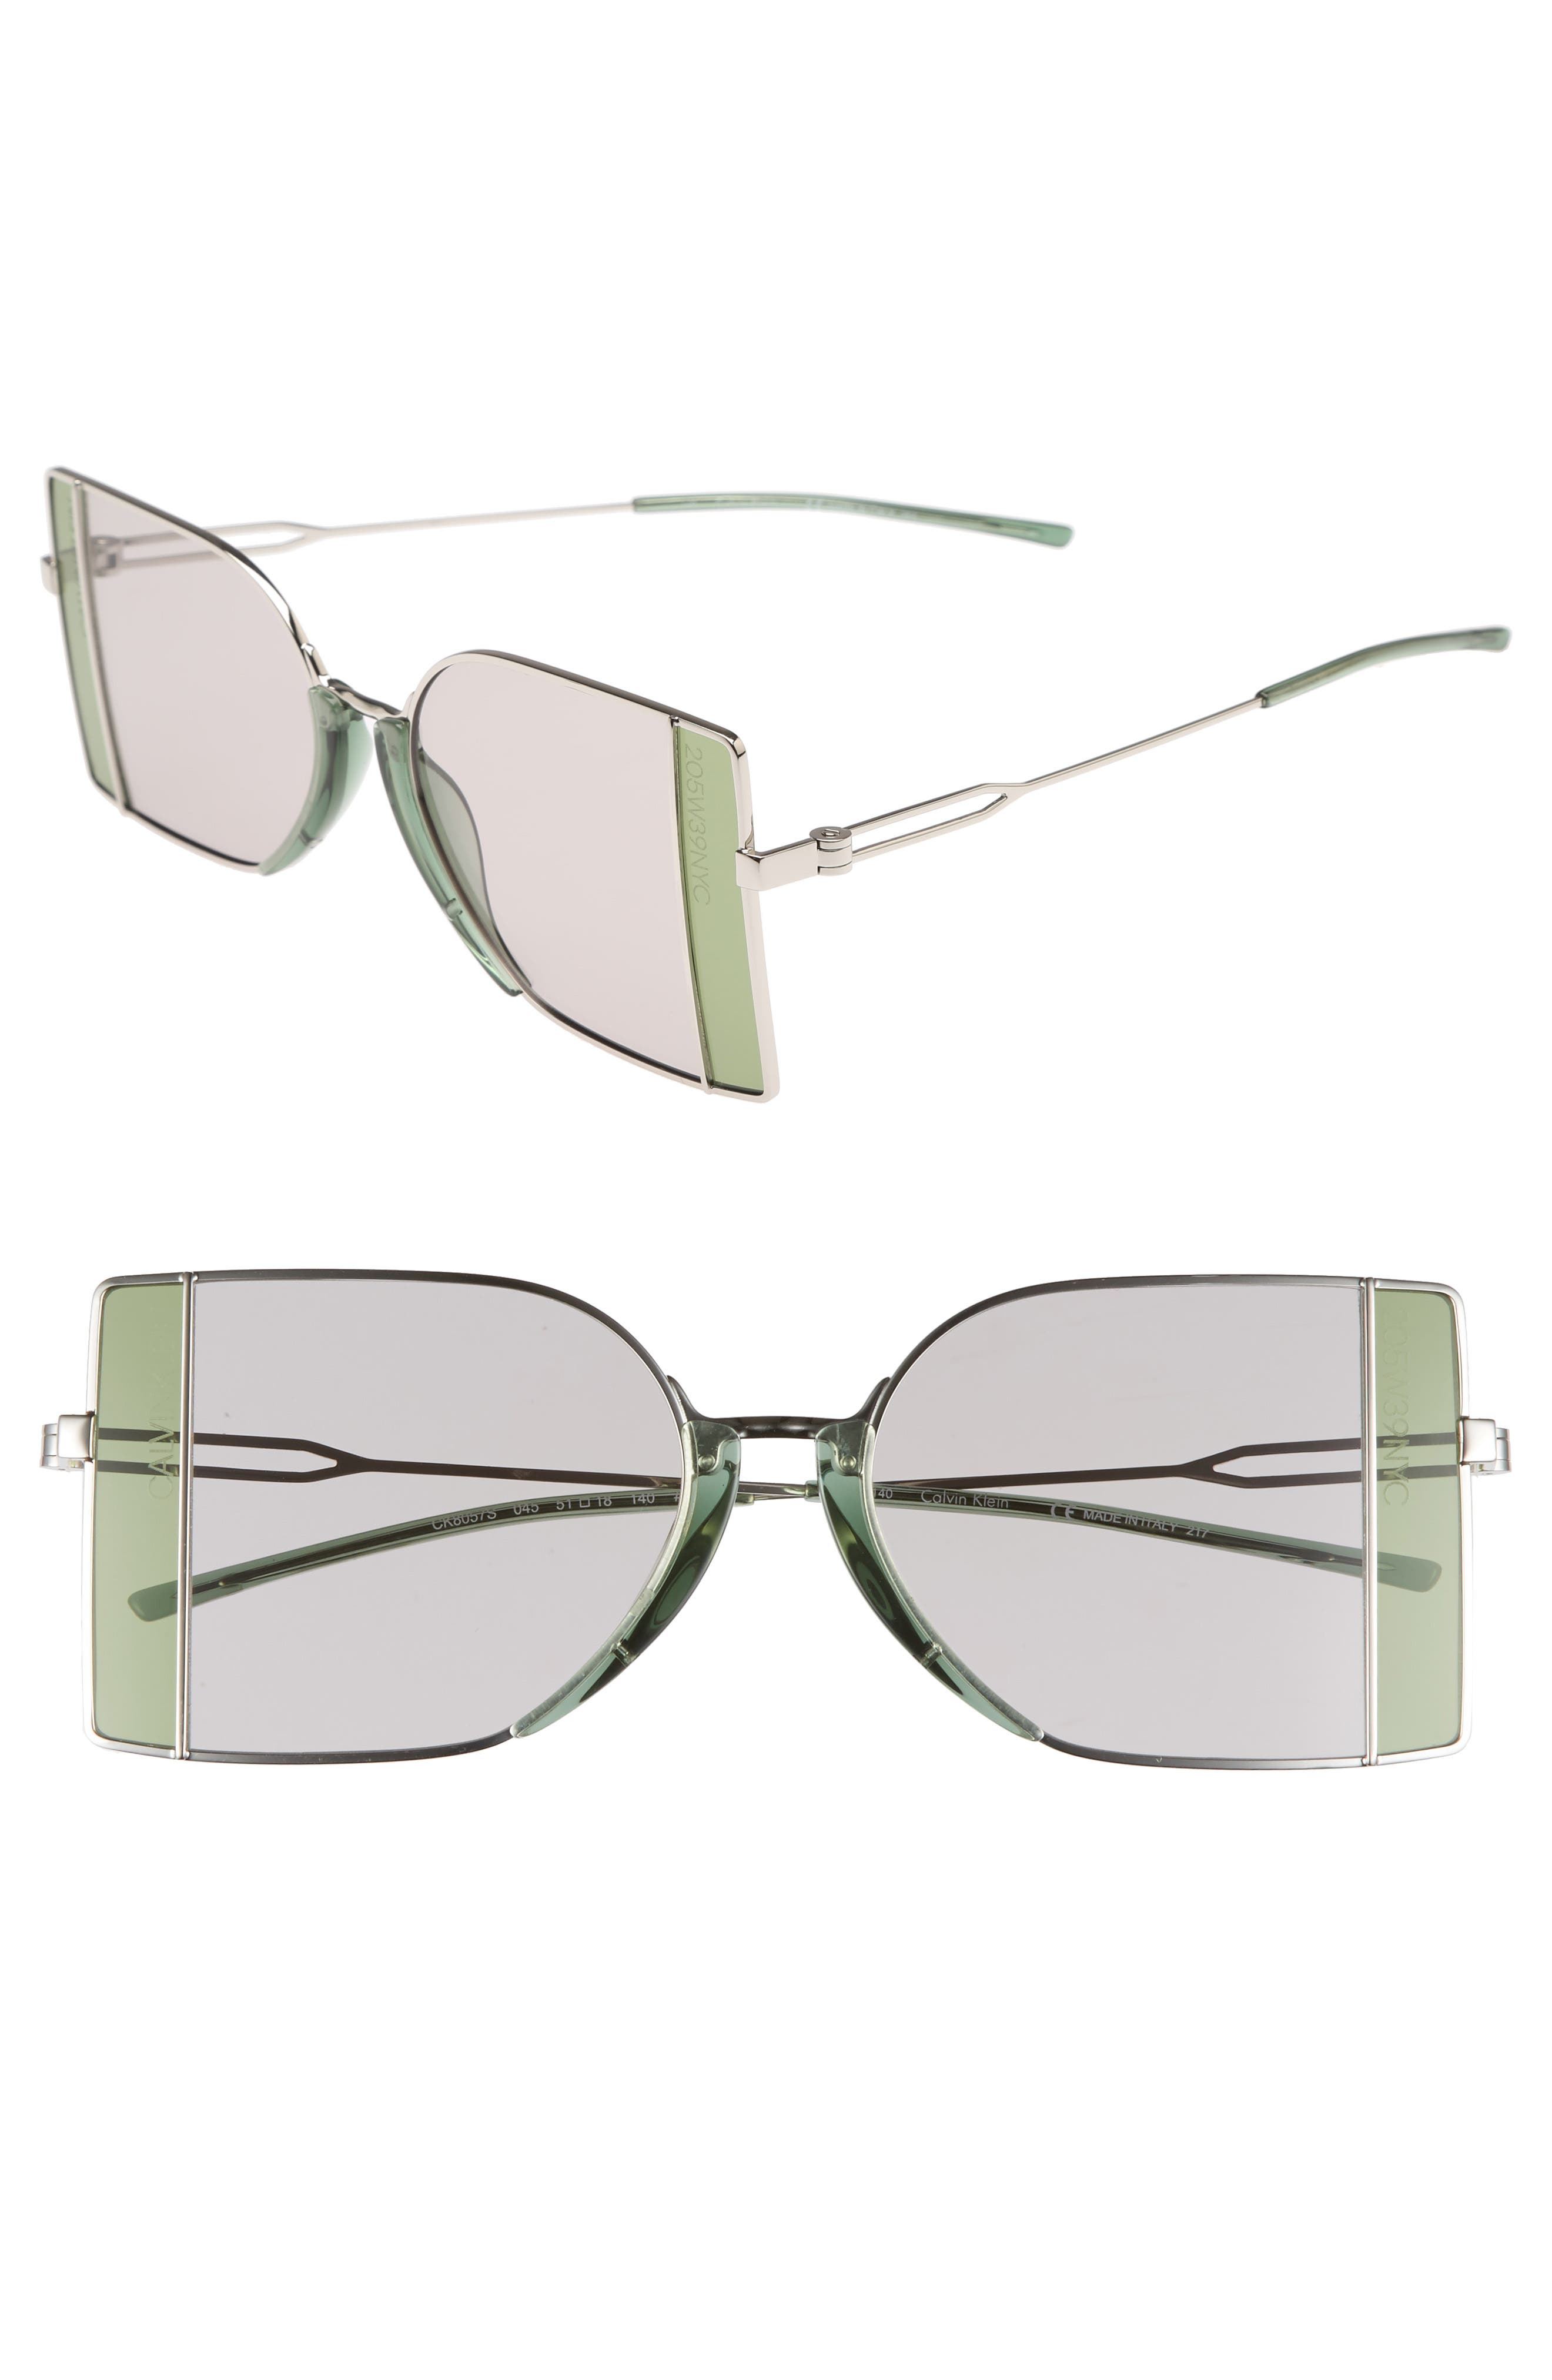 51mm Butterfly Sunglasses,                             Main thumbnail 1, color,                             041